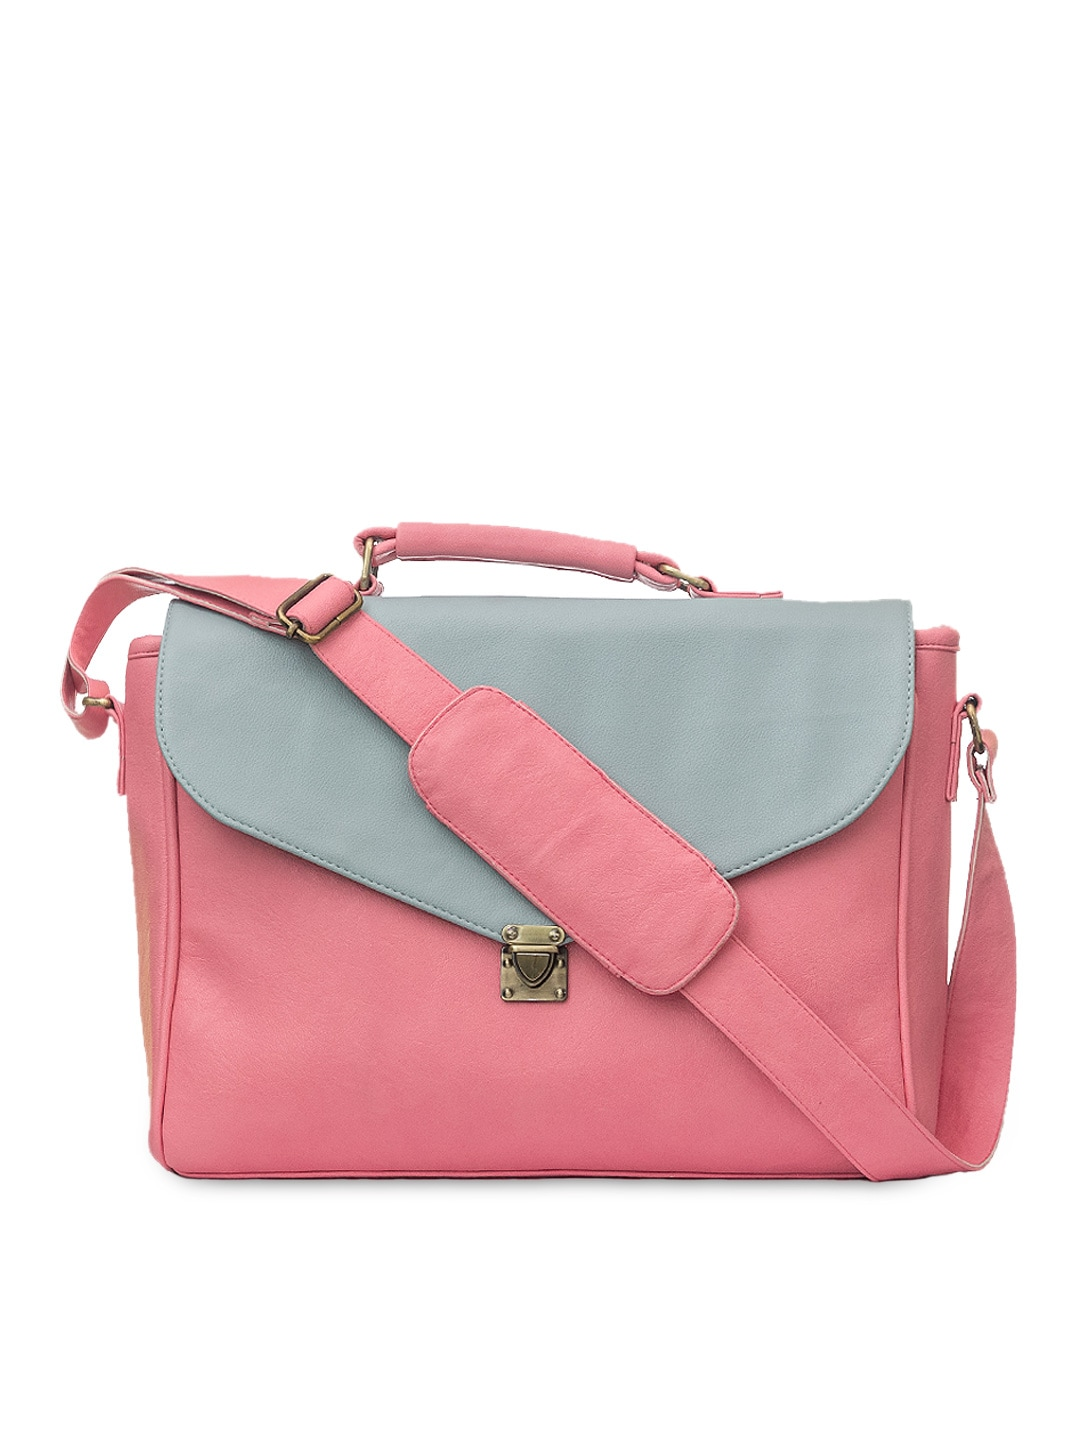 7afeb82e9650 Pink Bags